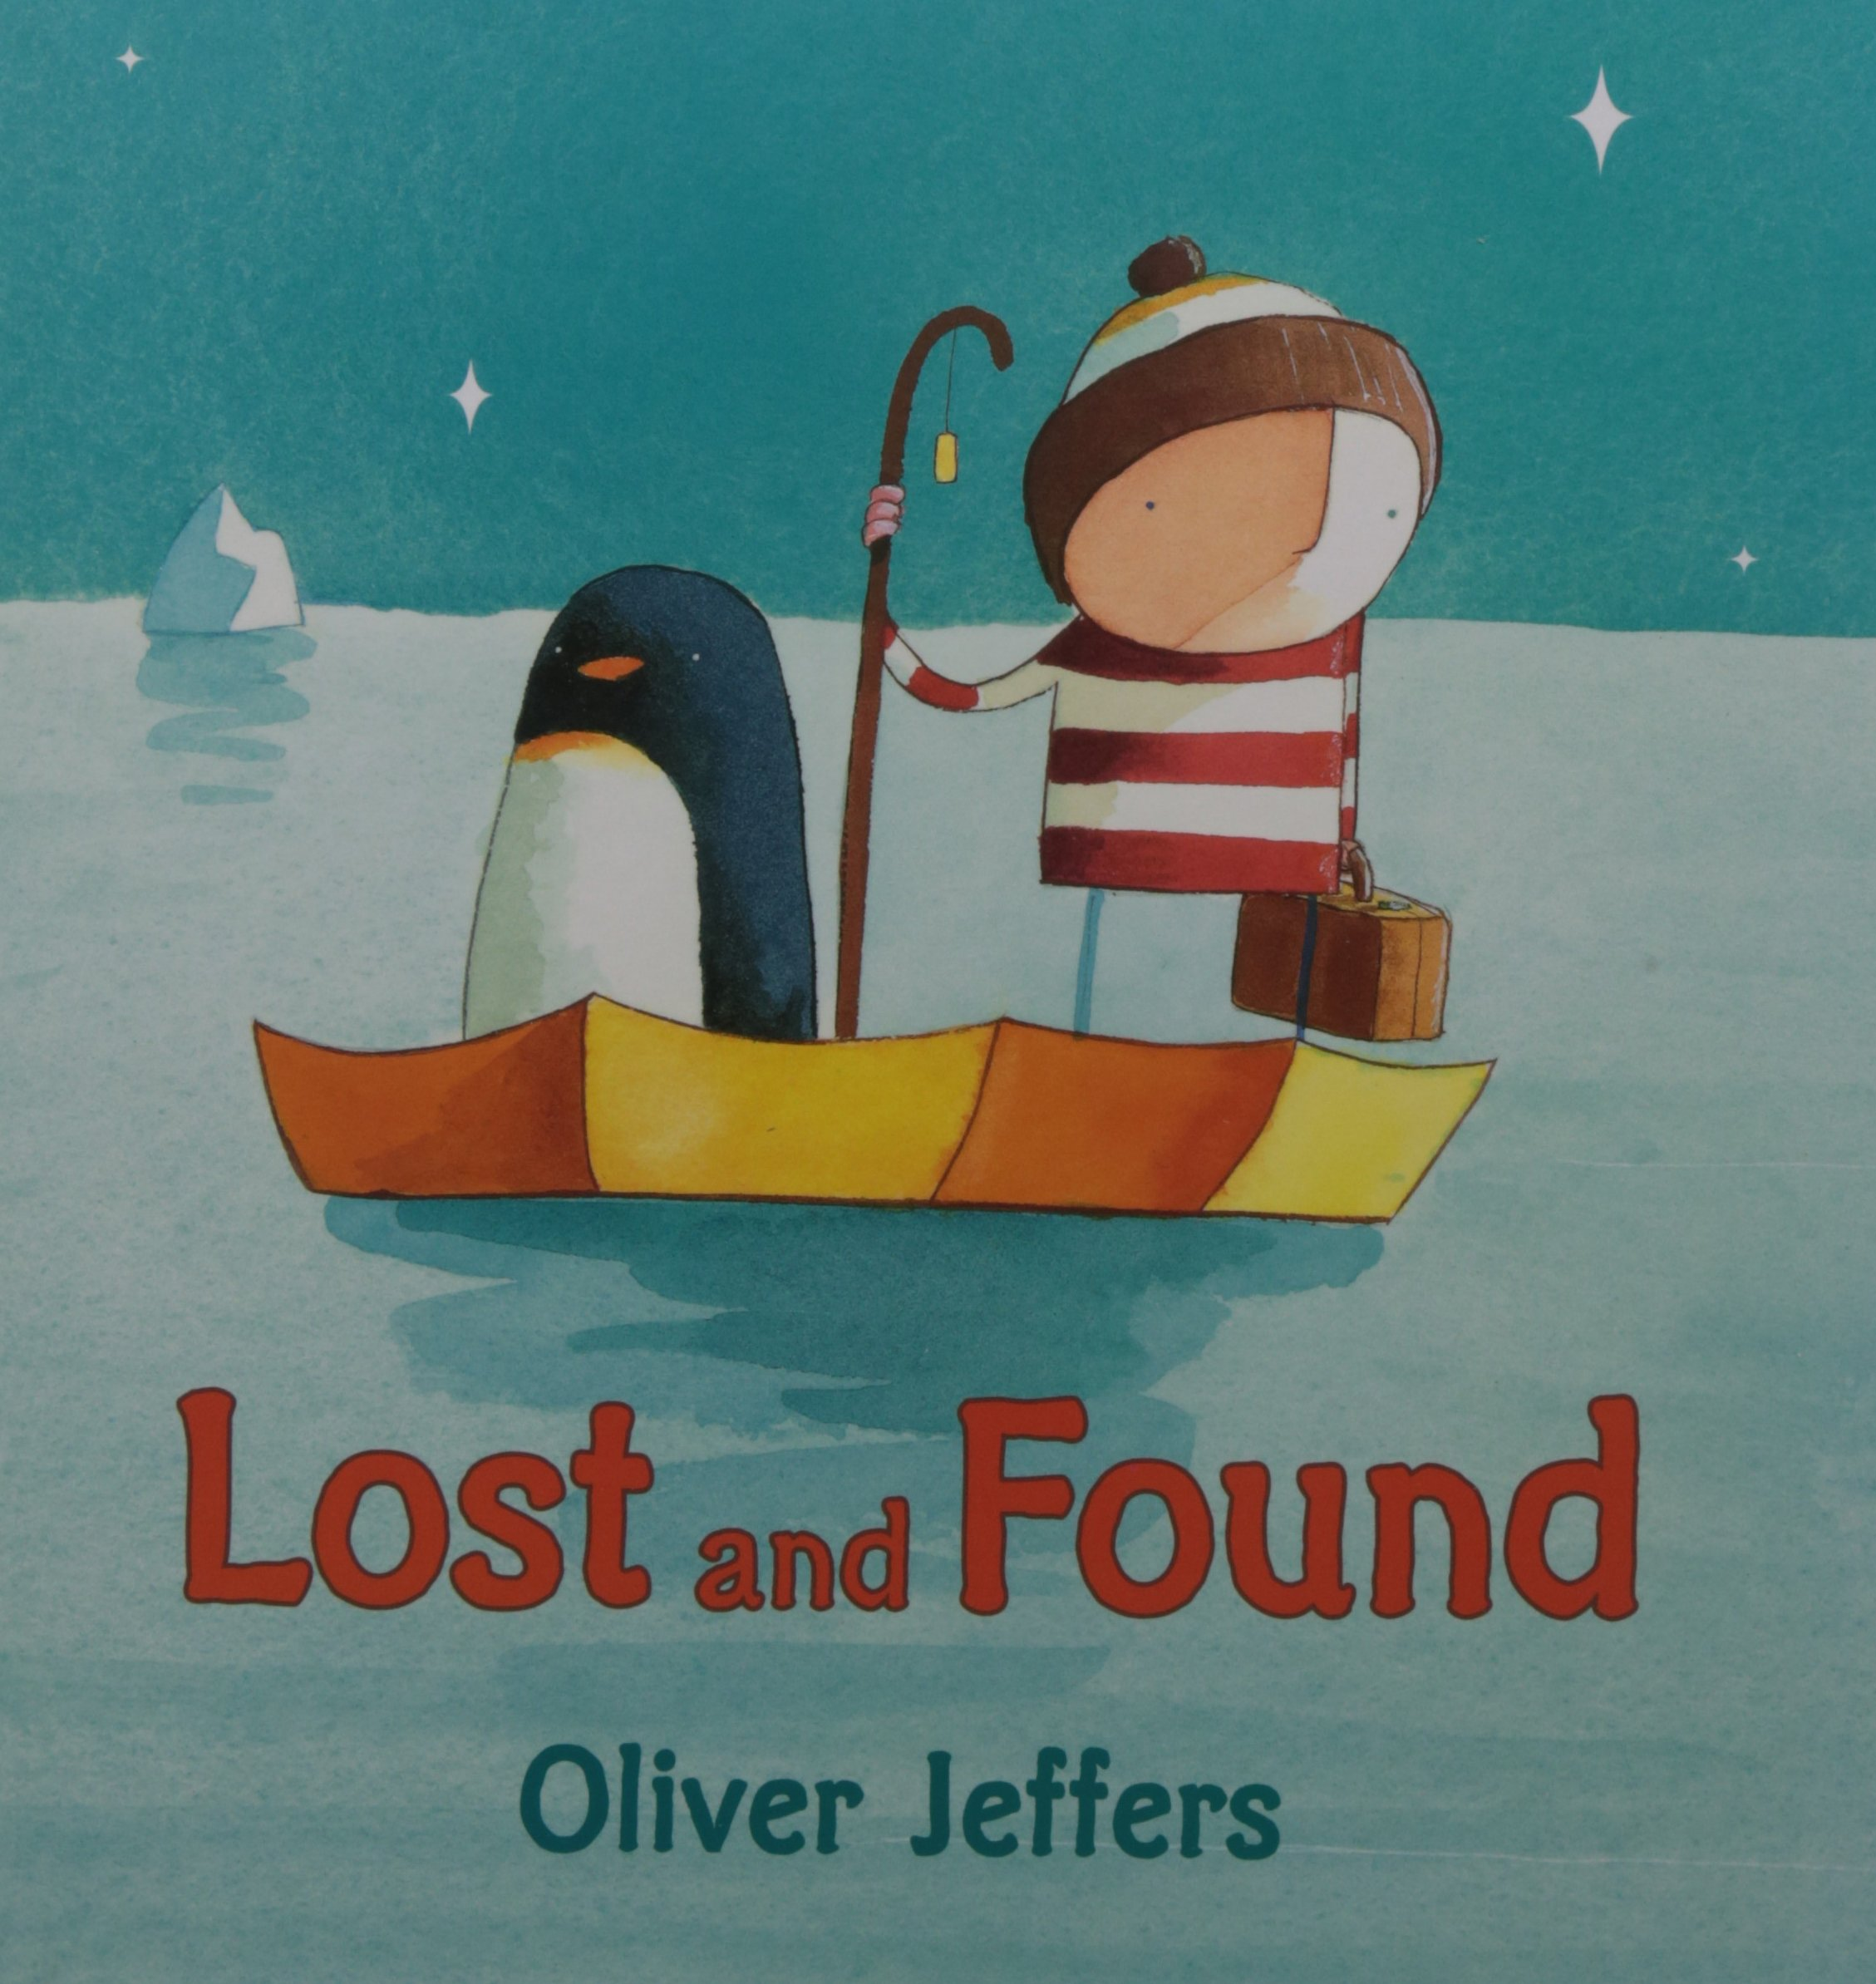 Lost Found Oliver Jeffers